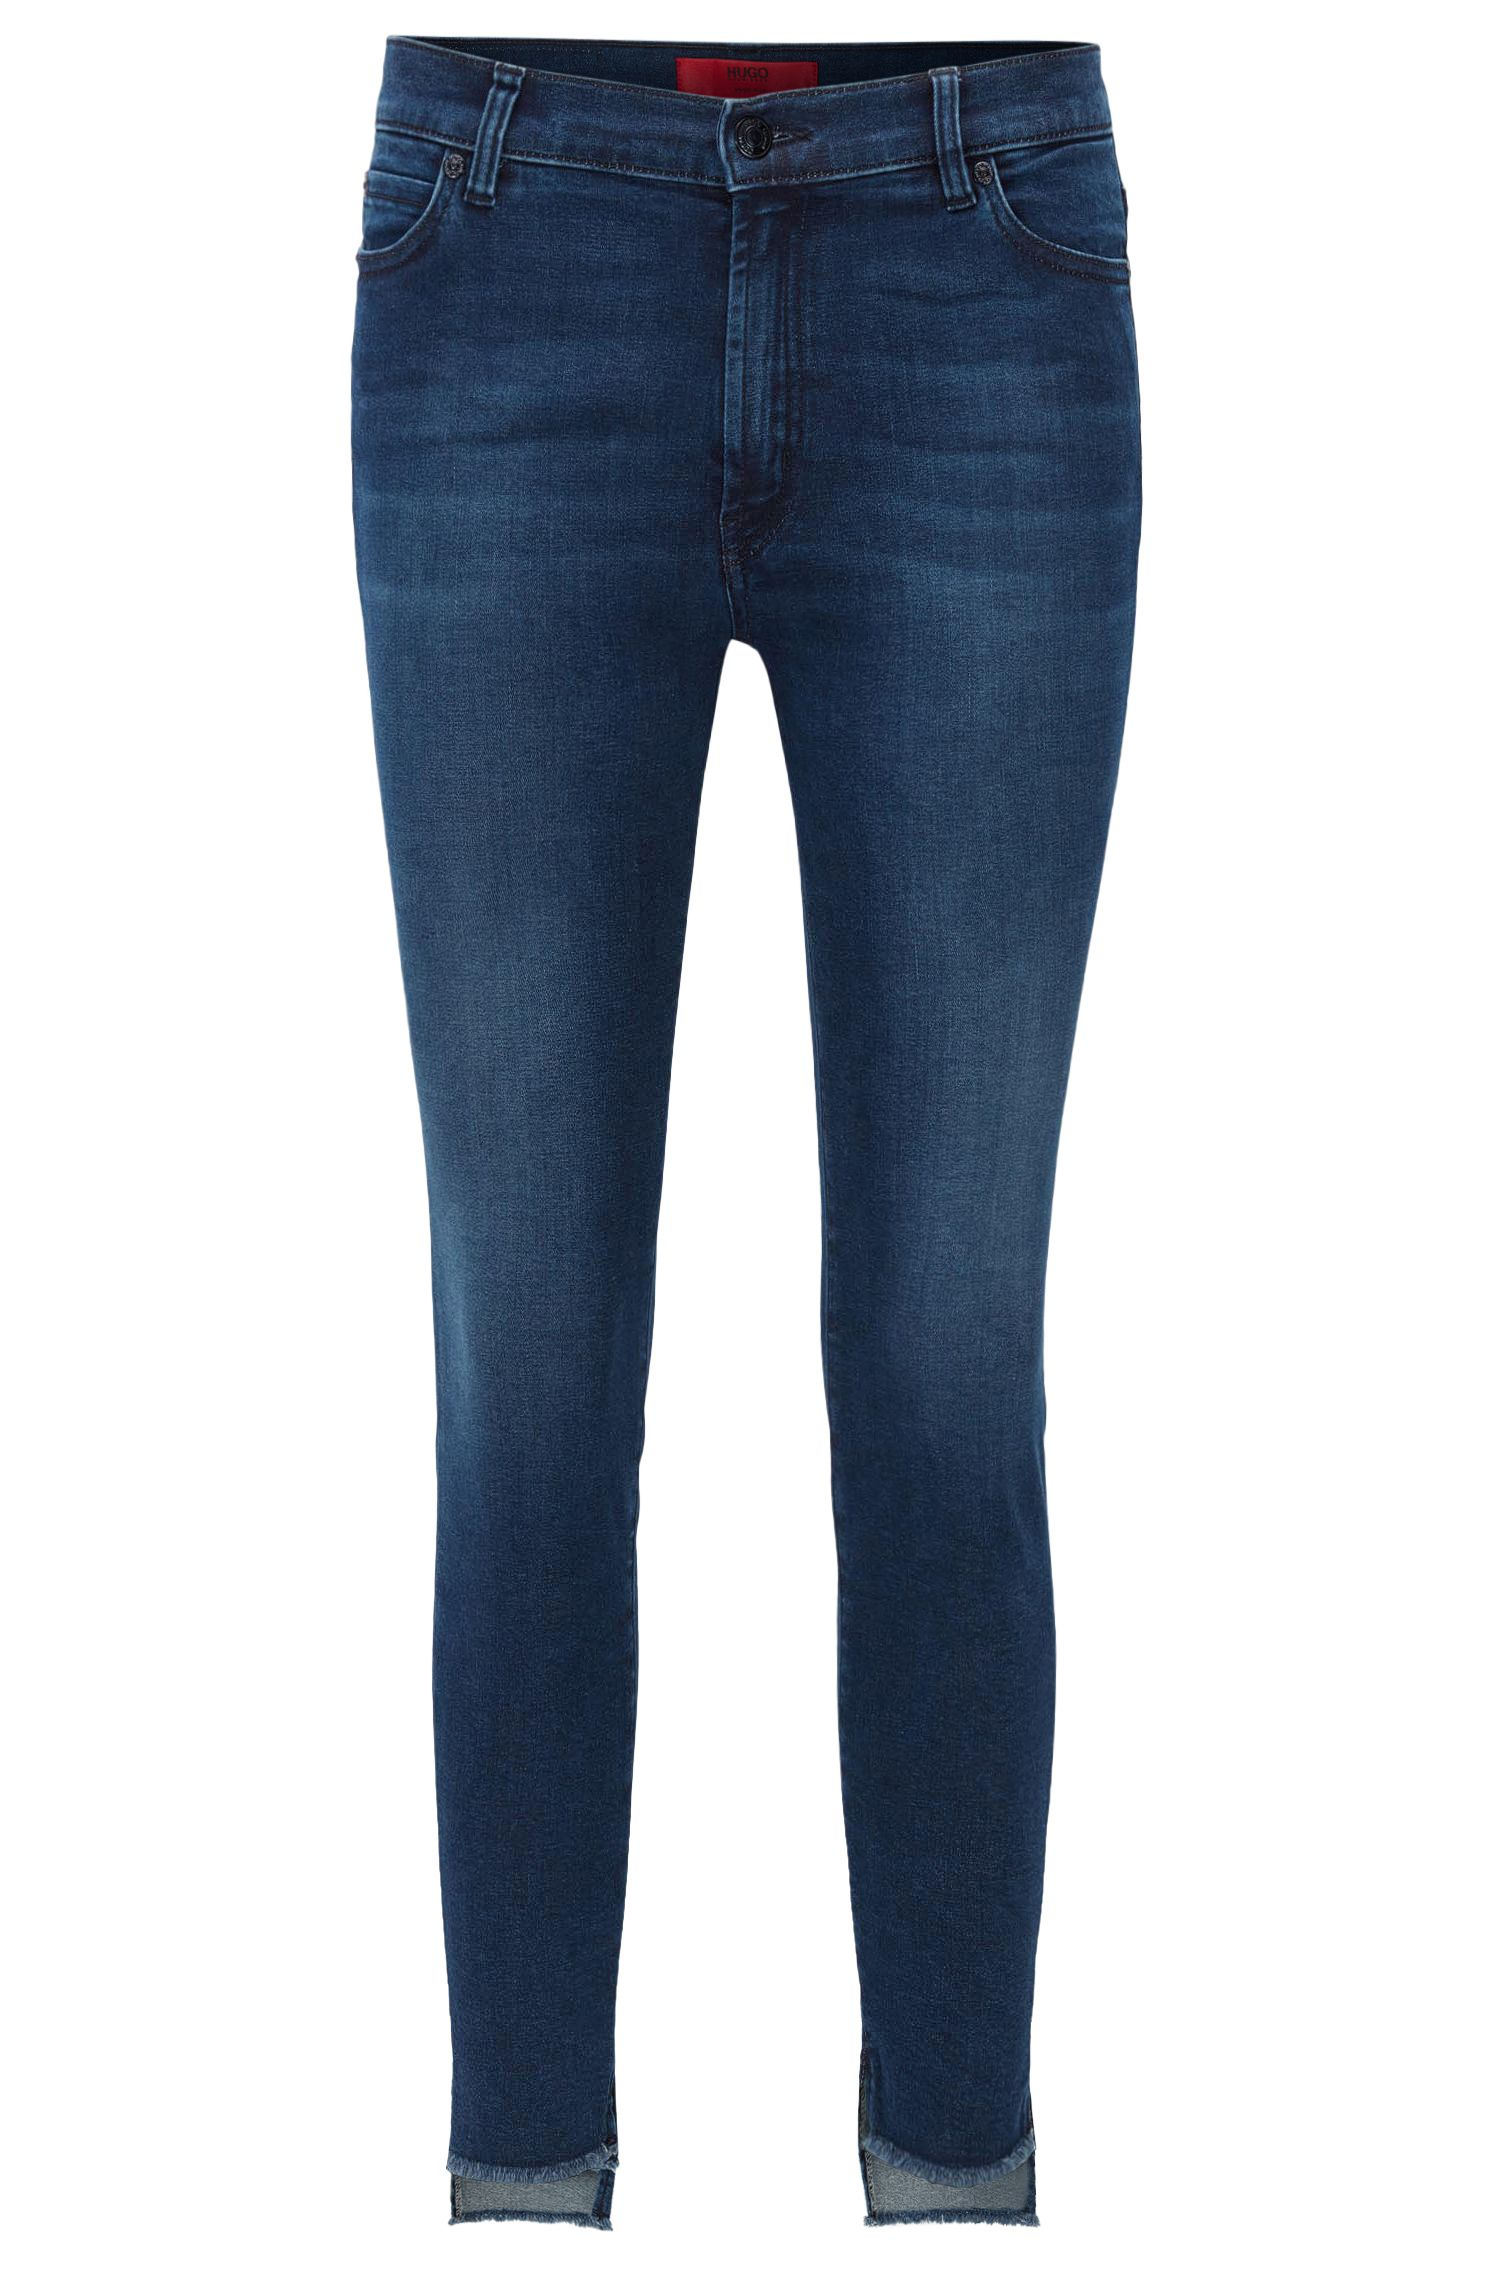 Extra Slim-Fit Jeans aus Super Stretch Denim mit asymmetrischem Saum